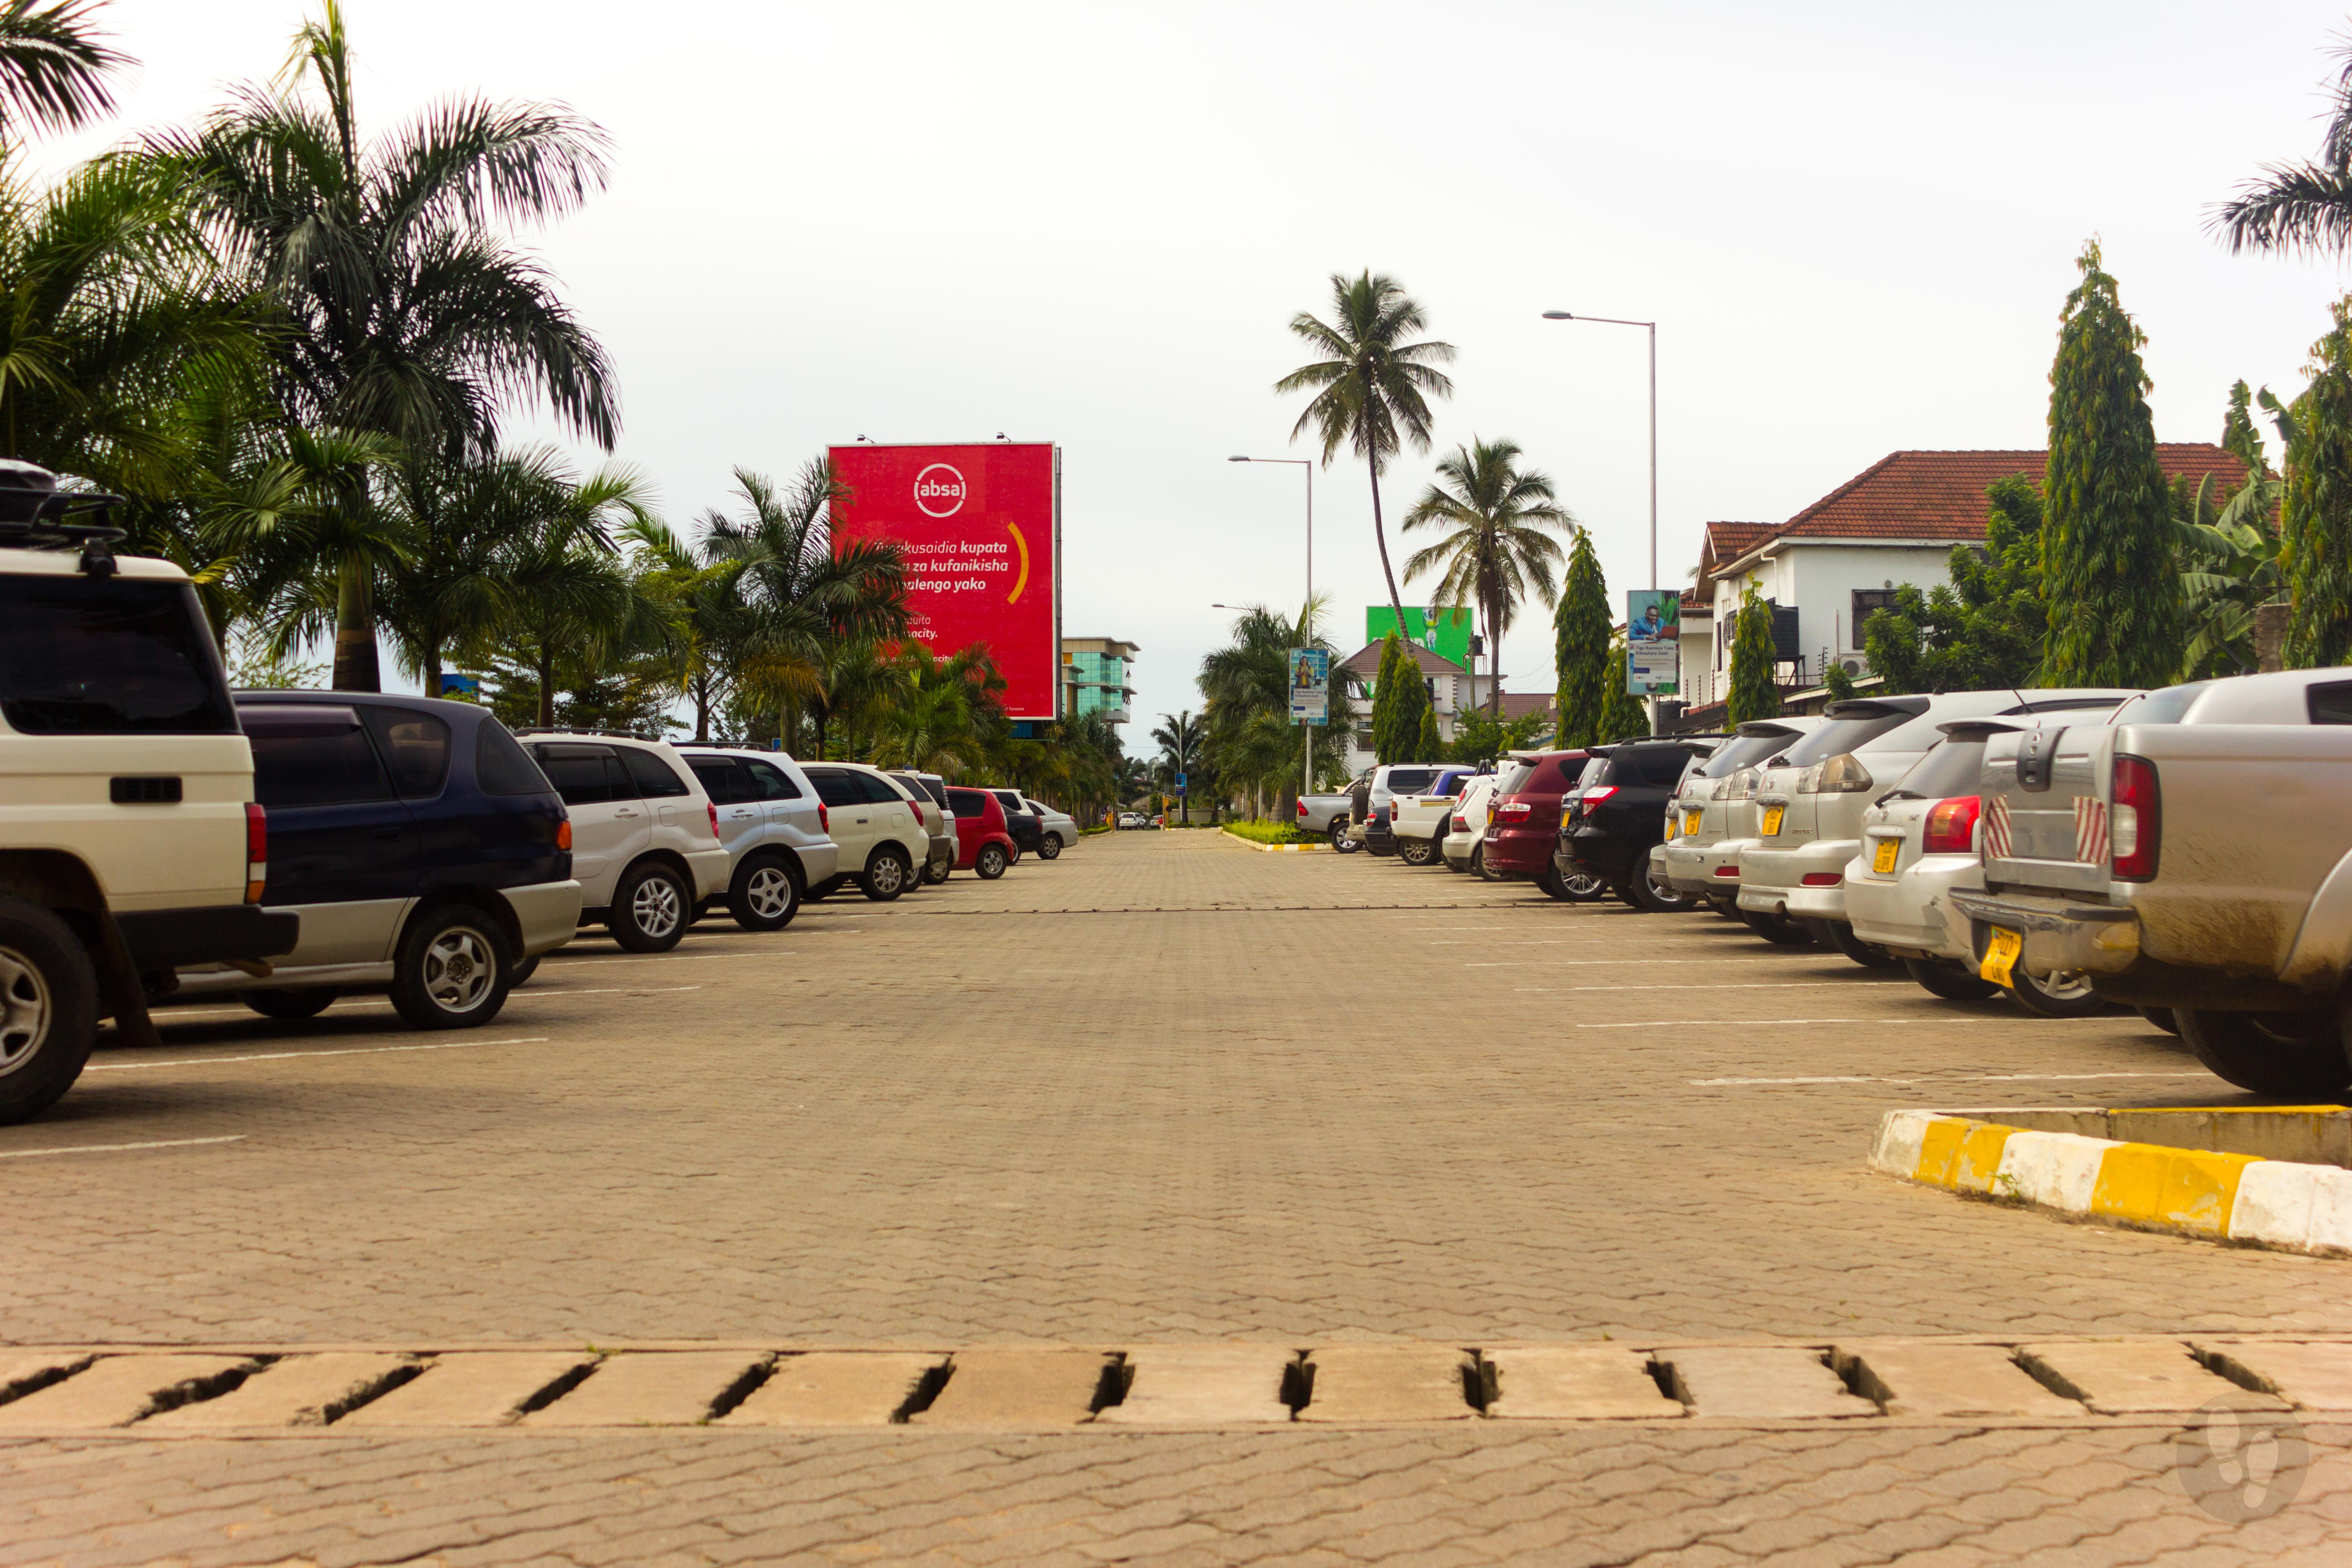 Ghana Gate Parking Lot